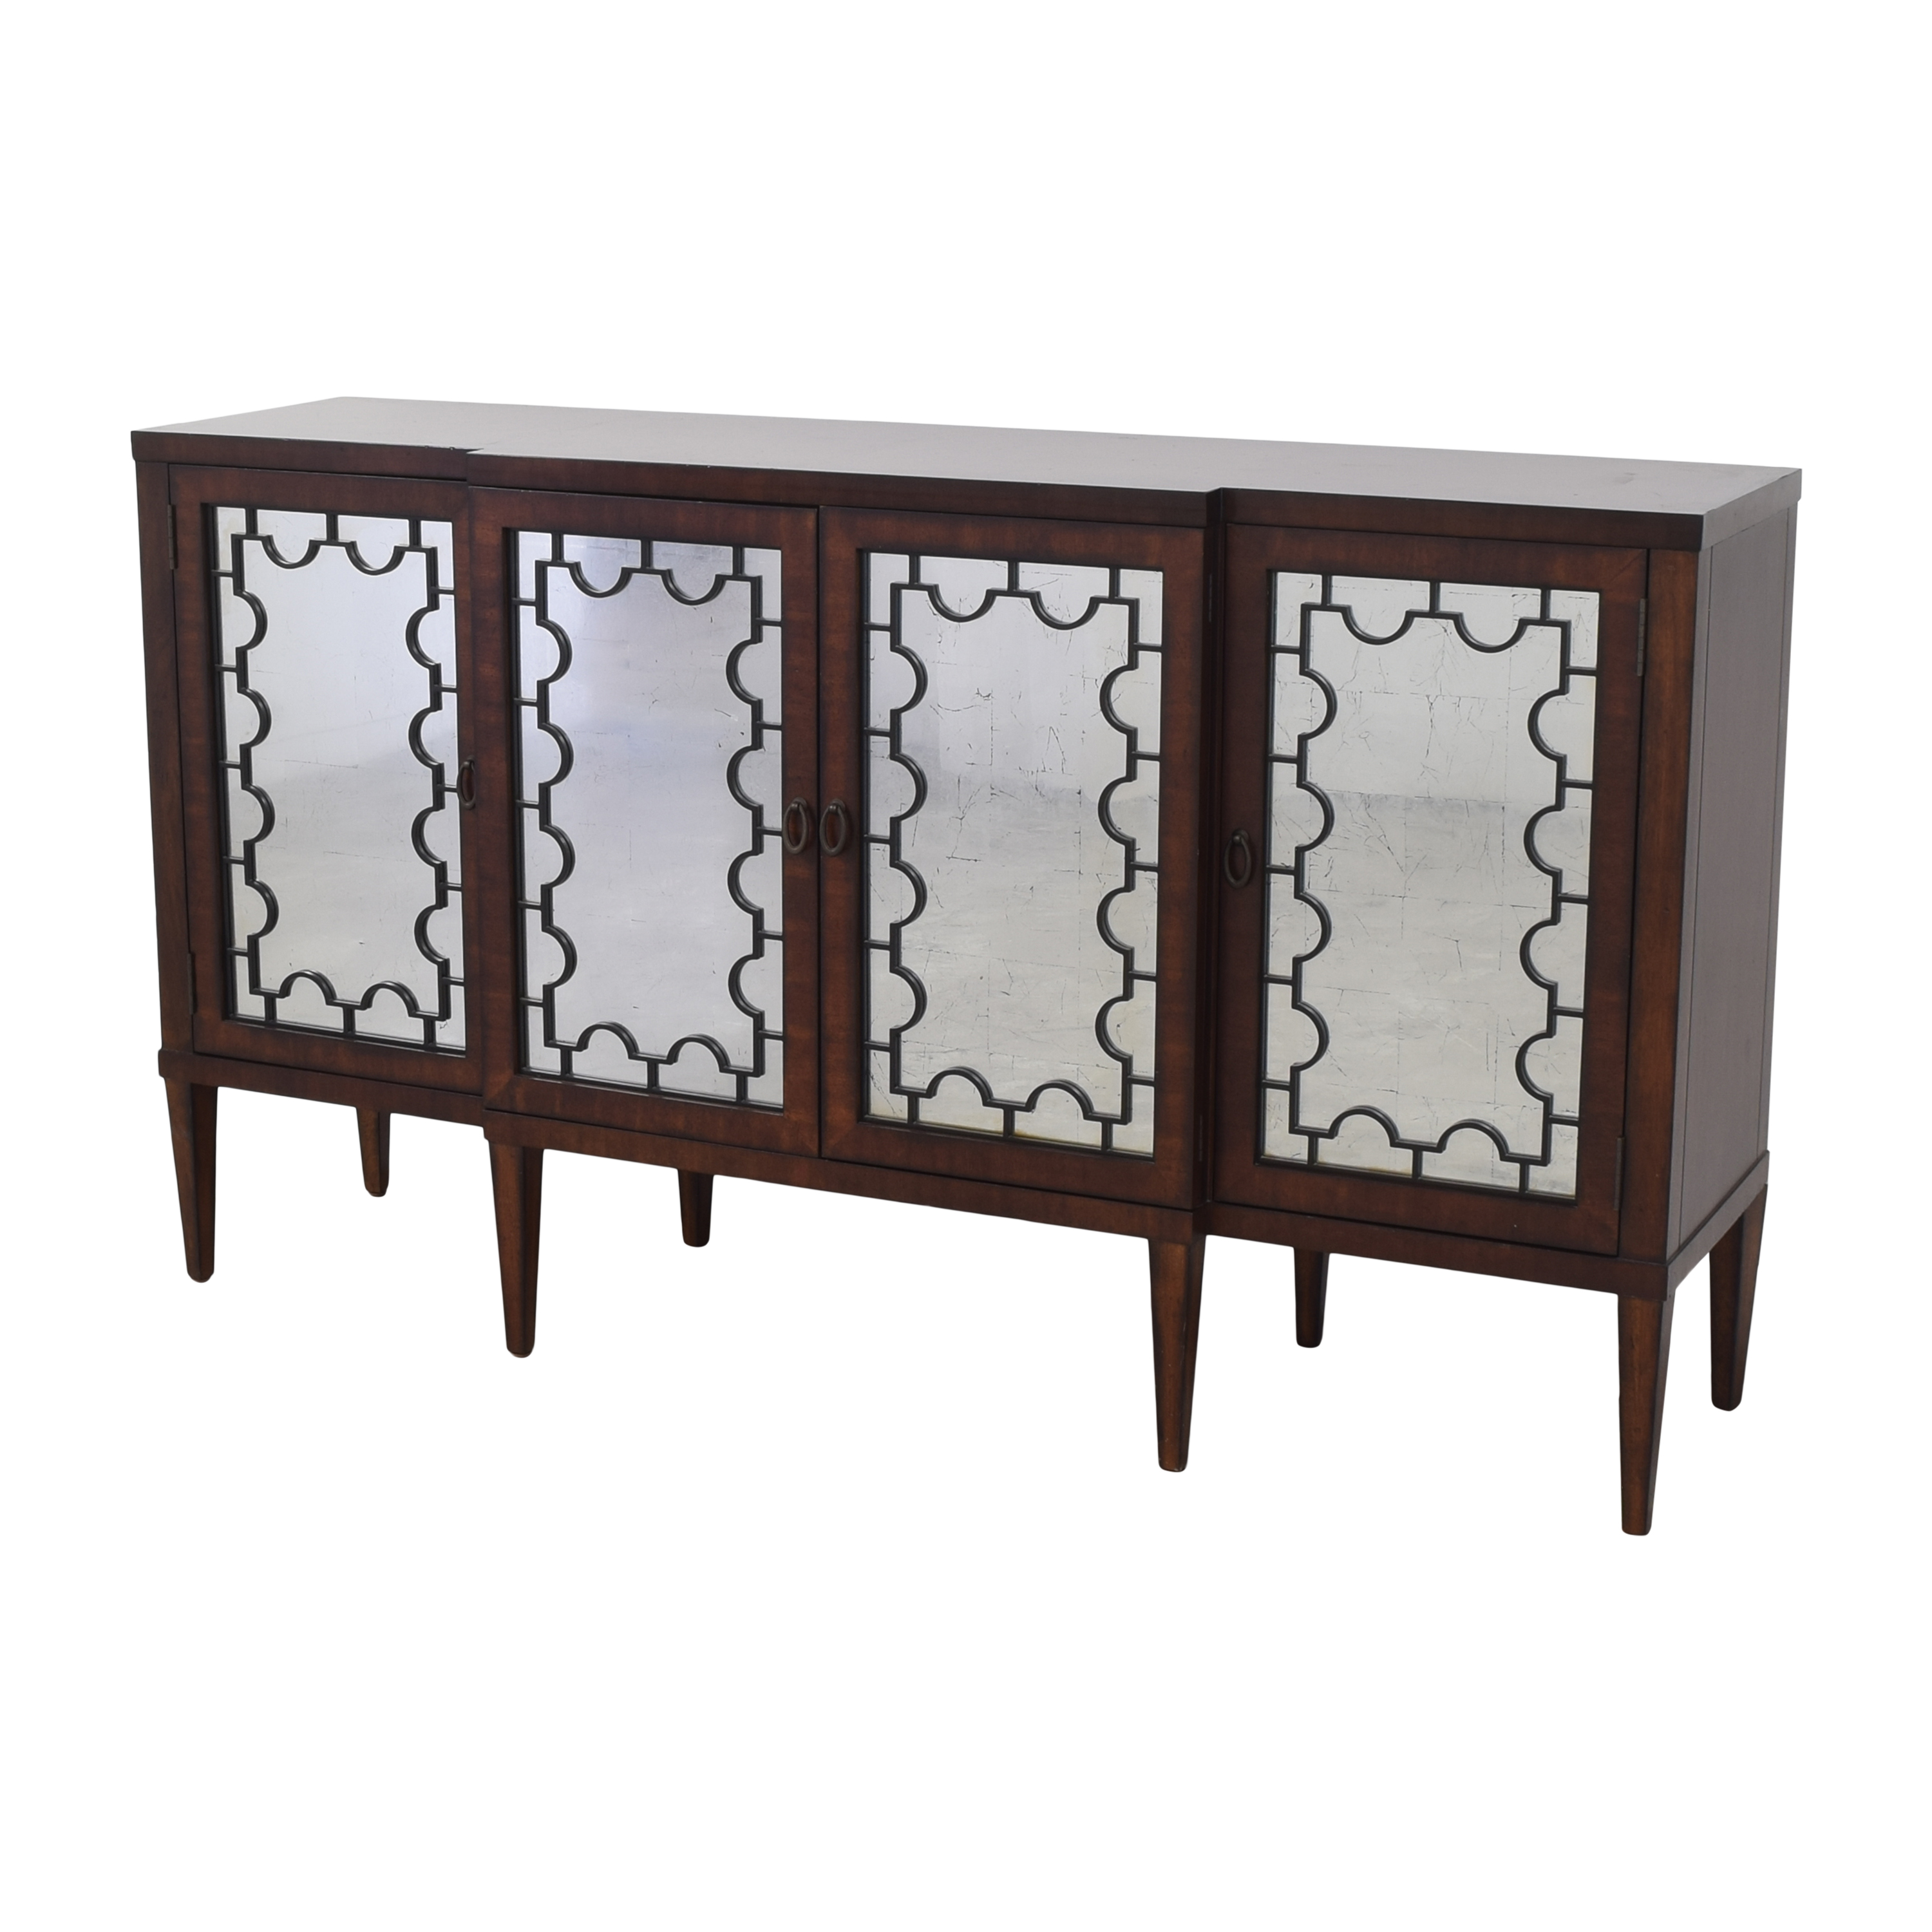 Councill Moore Councill Modern Buffet Sideboard on sale